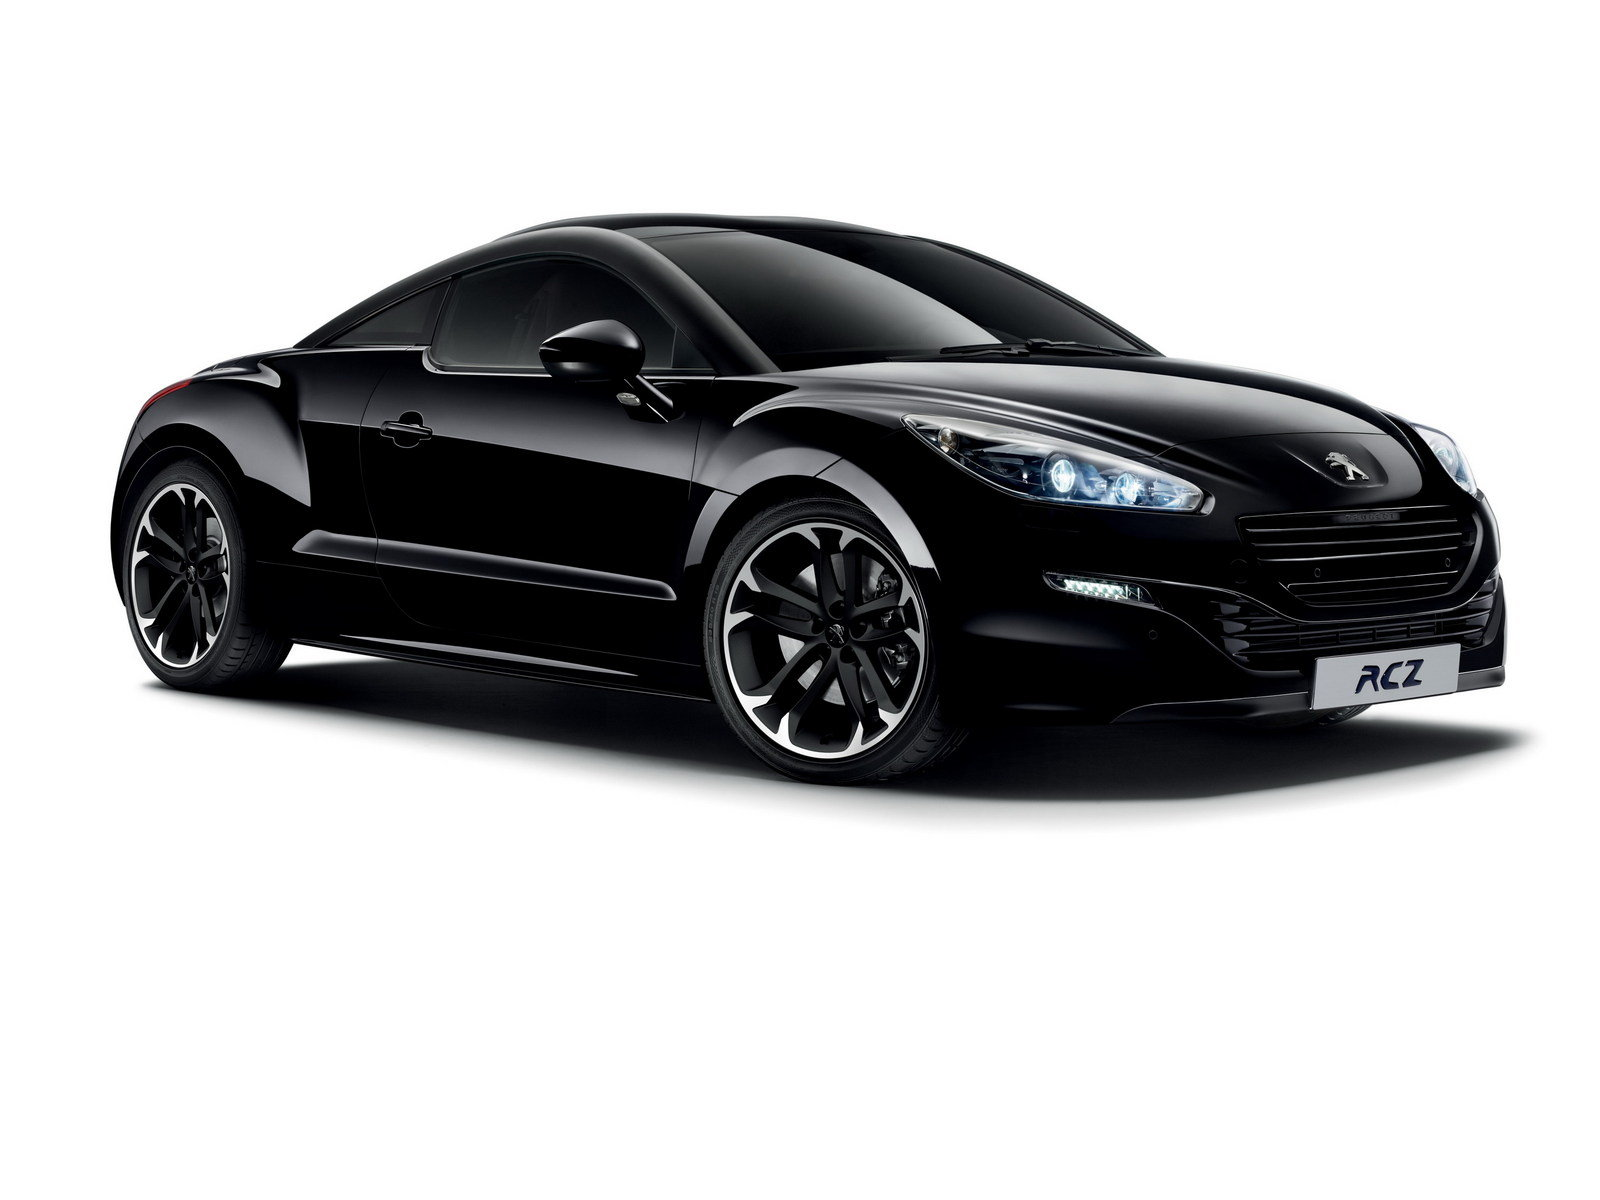 2014 peugeot rcz red carbon limited edition review top. Black Bedroom Furniture Sets. Home Design Ideas